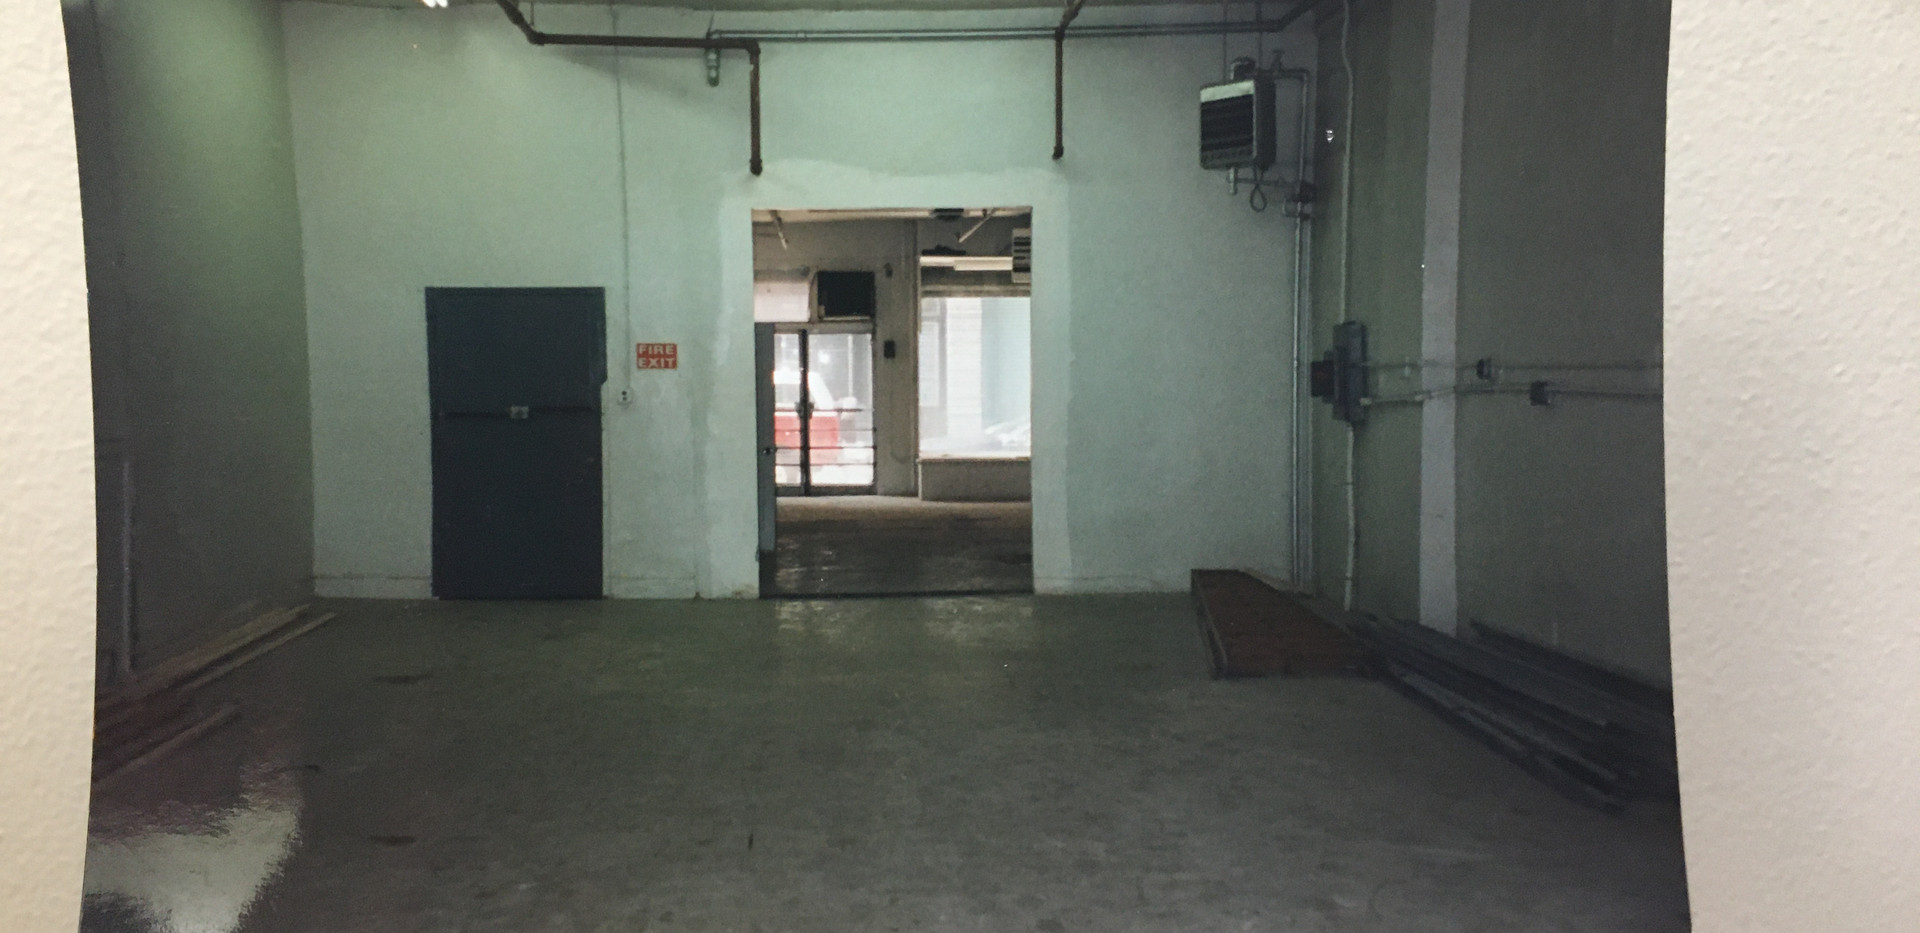 Unrenovated space at 74 Warren Street, Fall 1996